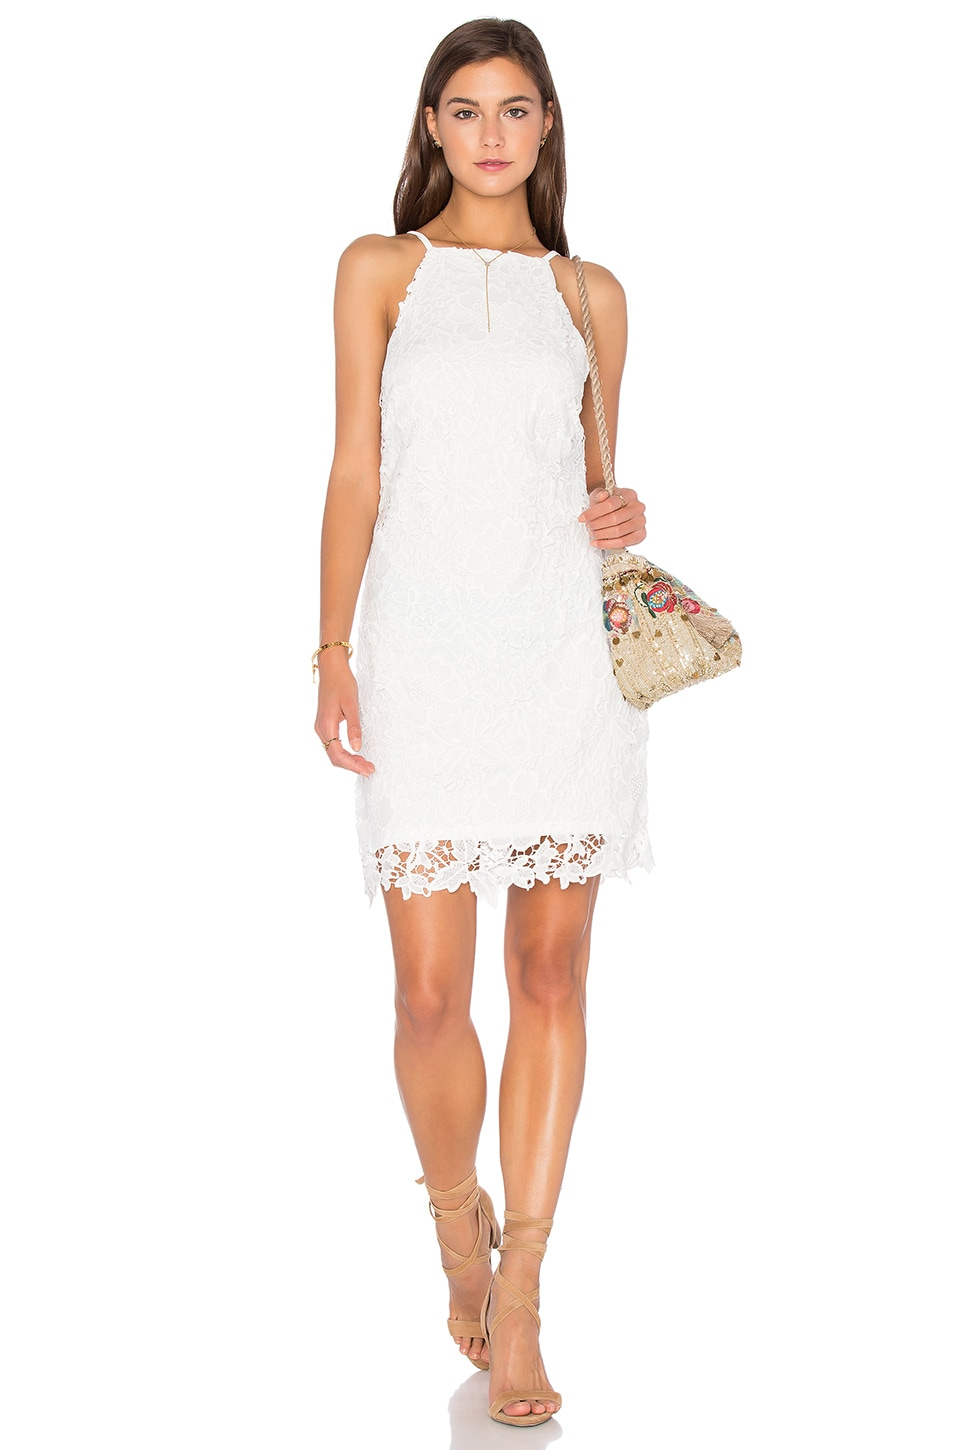 Bishop + Young Into The Sunset Crochet Dress in White